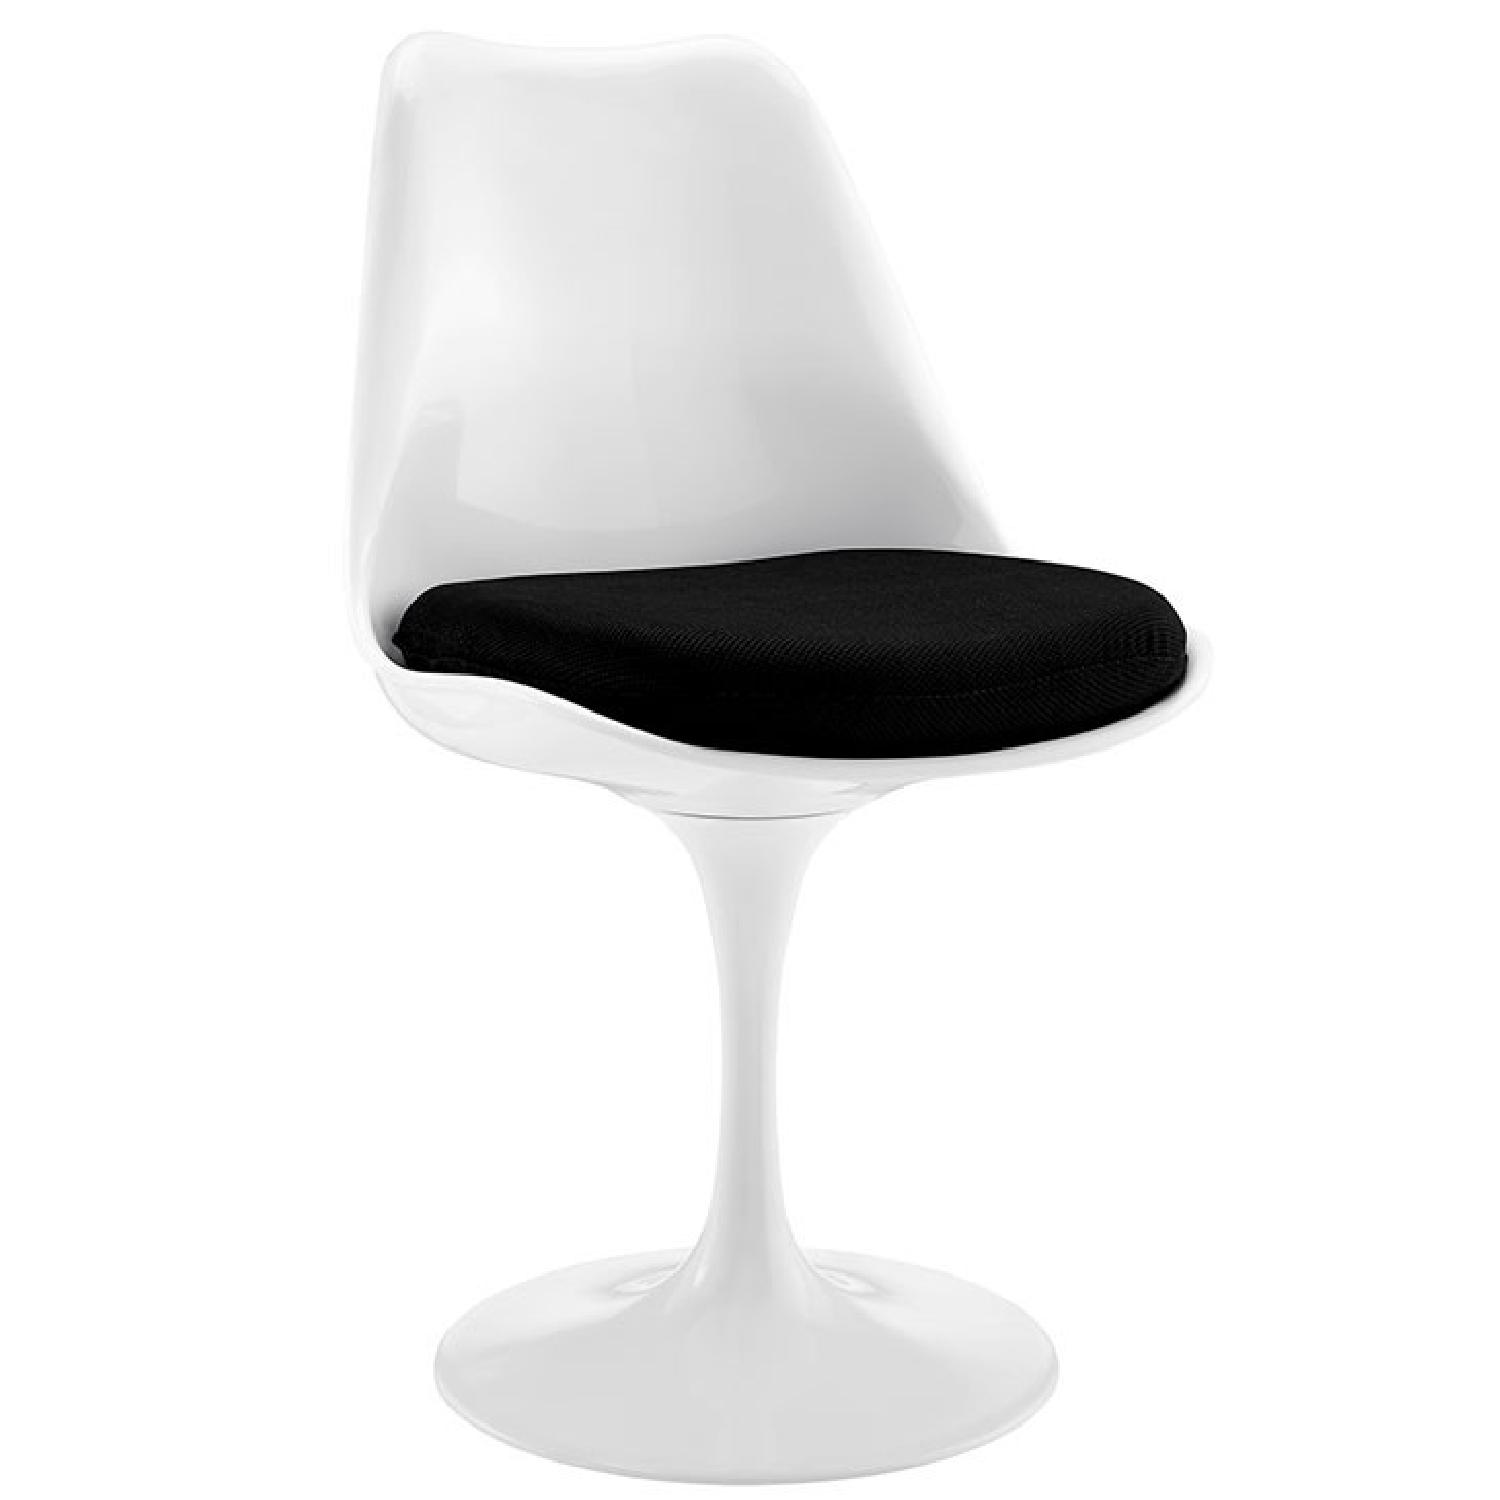 Tulip Fabric Dining Chair in Black